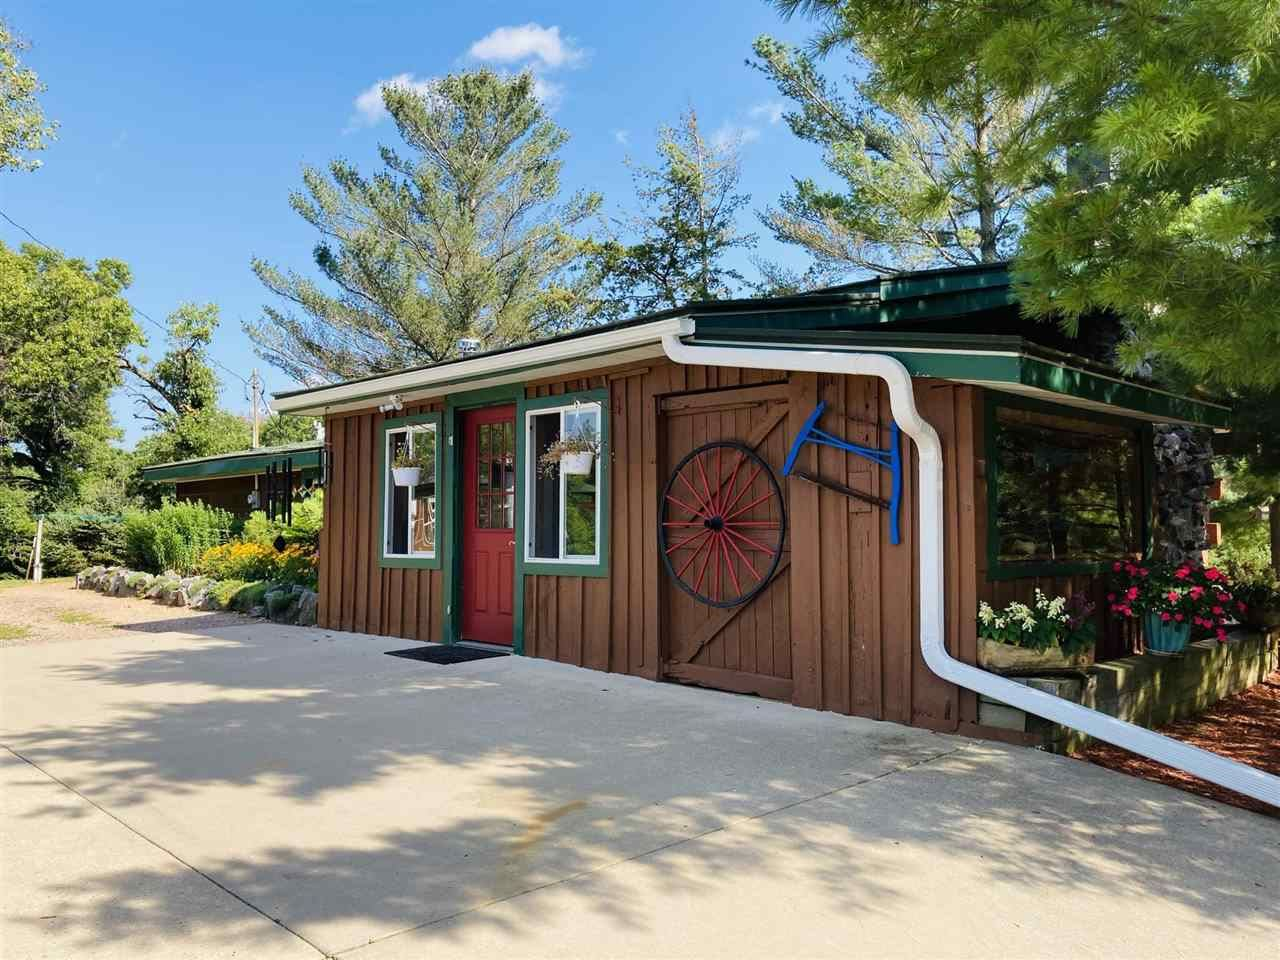 1890 Dover Dr, Friendship, WI 53934 - #: 1915508